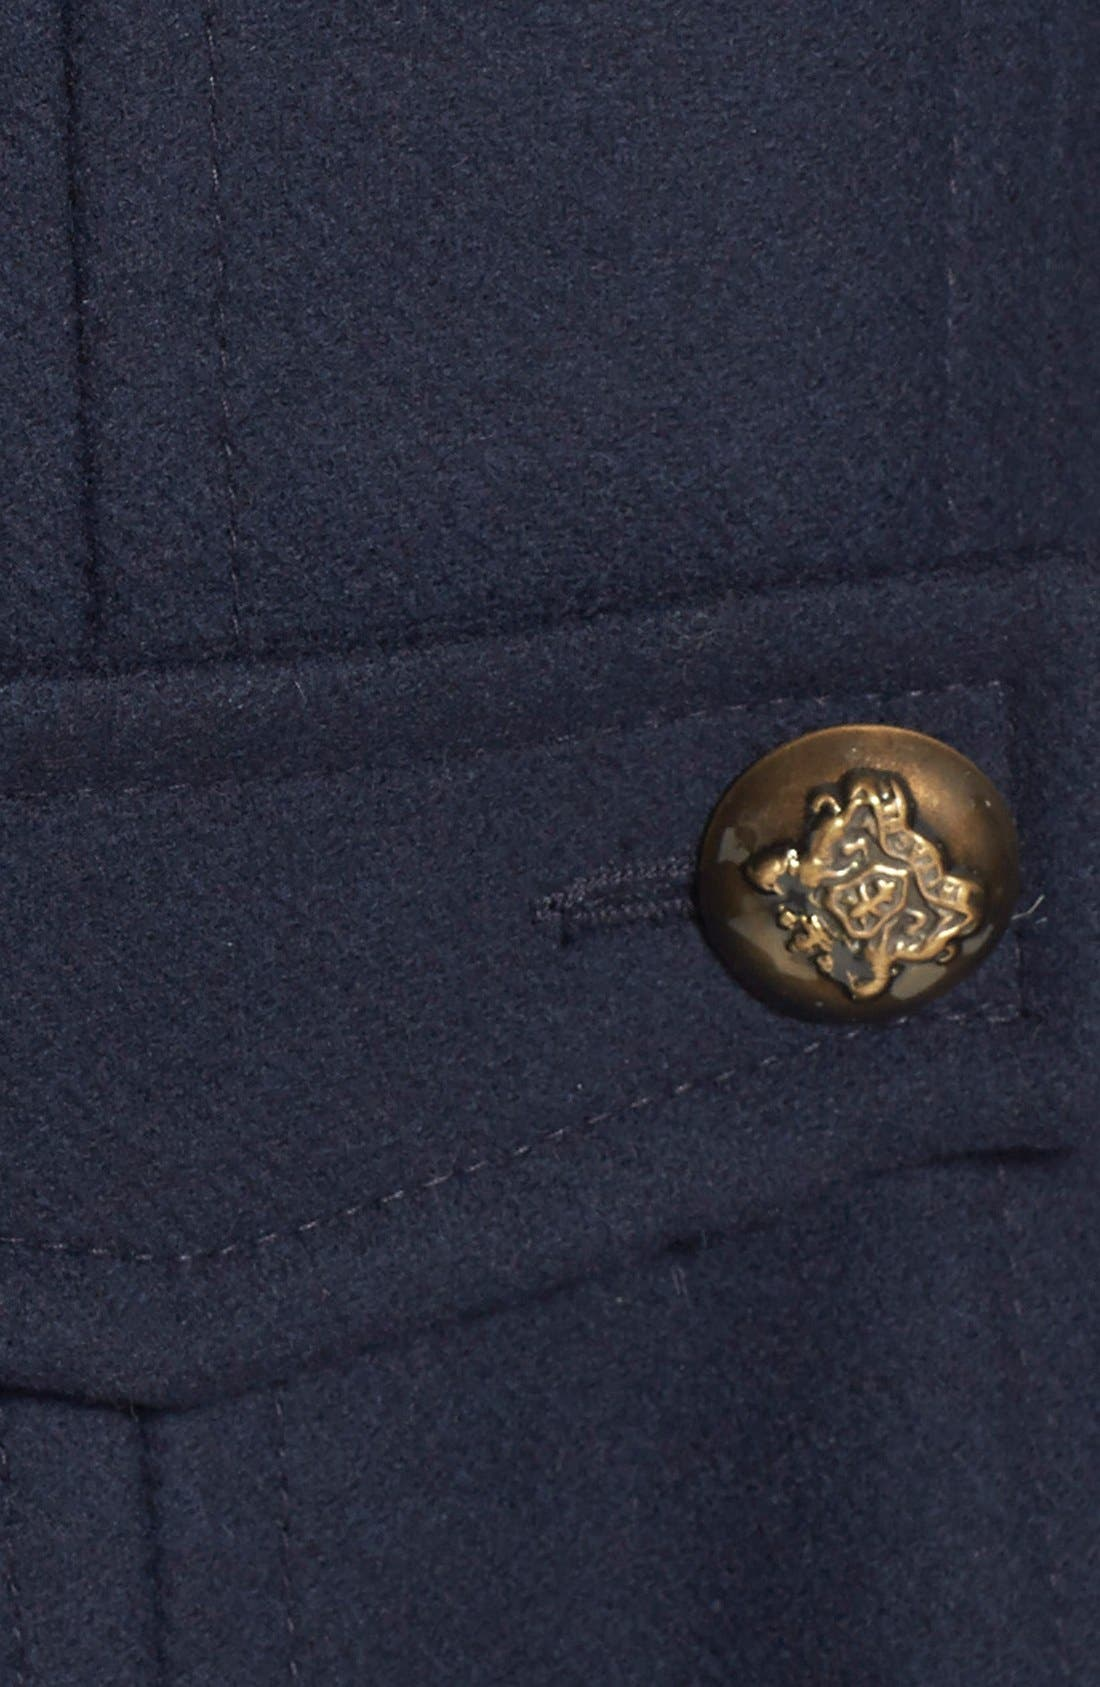 Double Breasted Wool Blend Peacoat,                             Alternate thumbnail 3, color,                             001